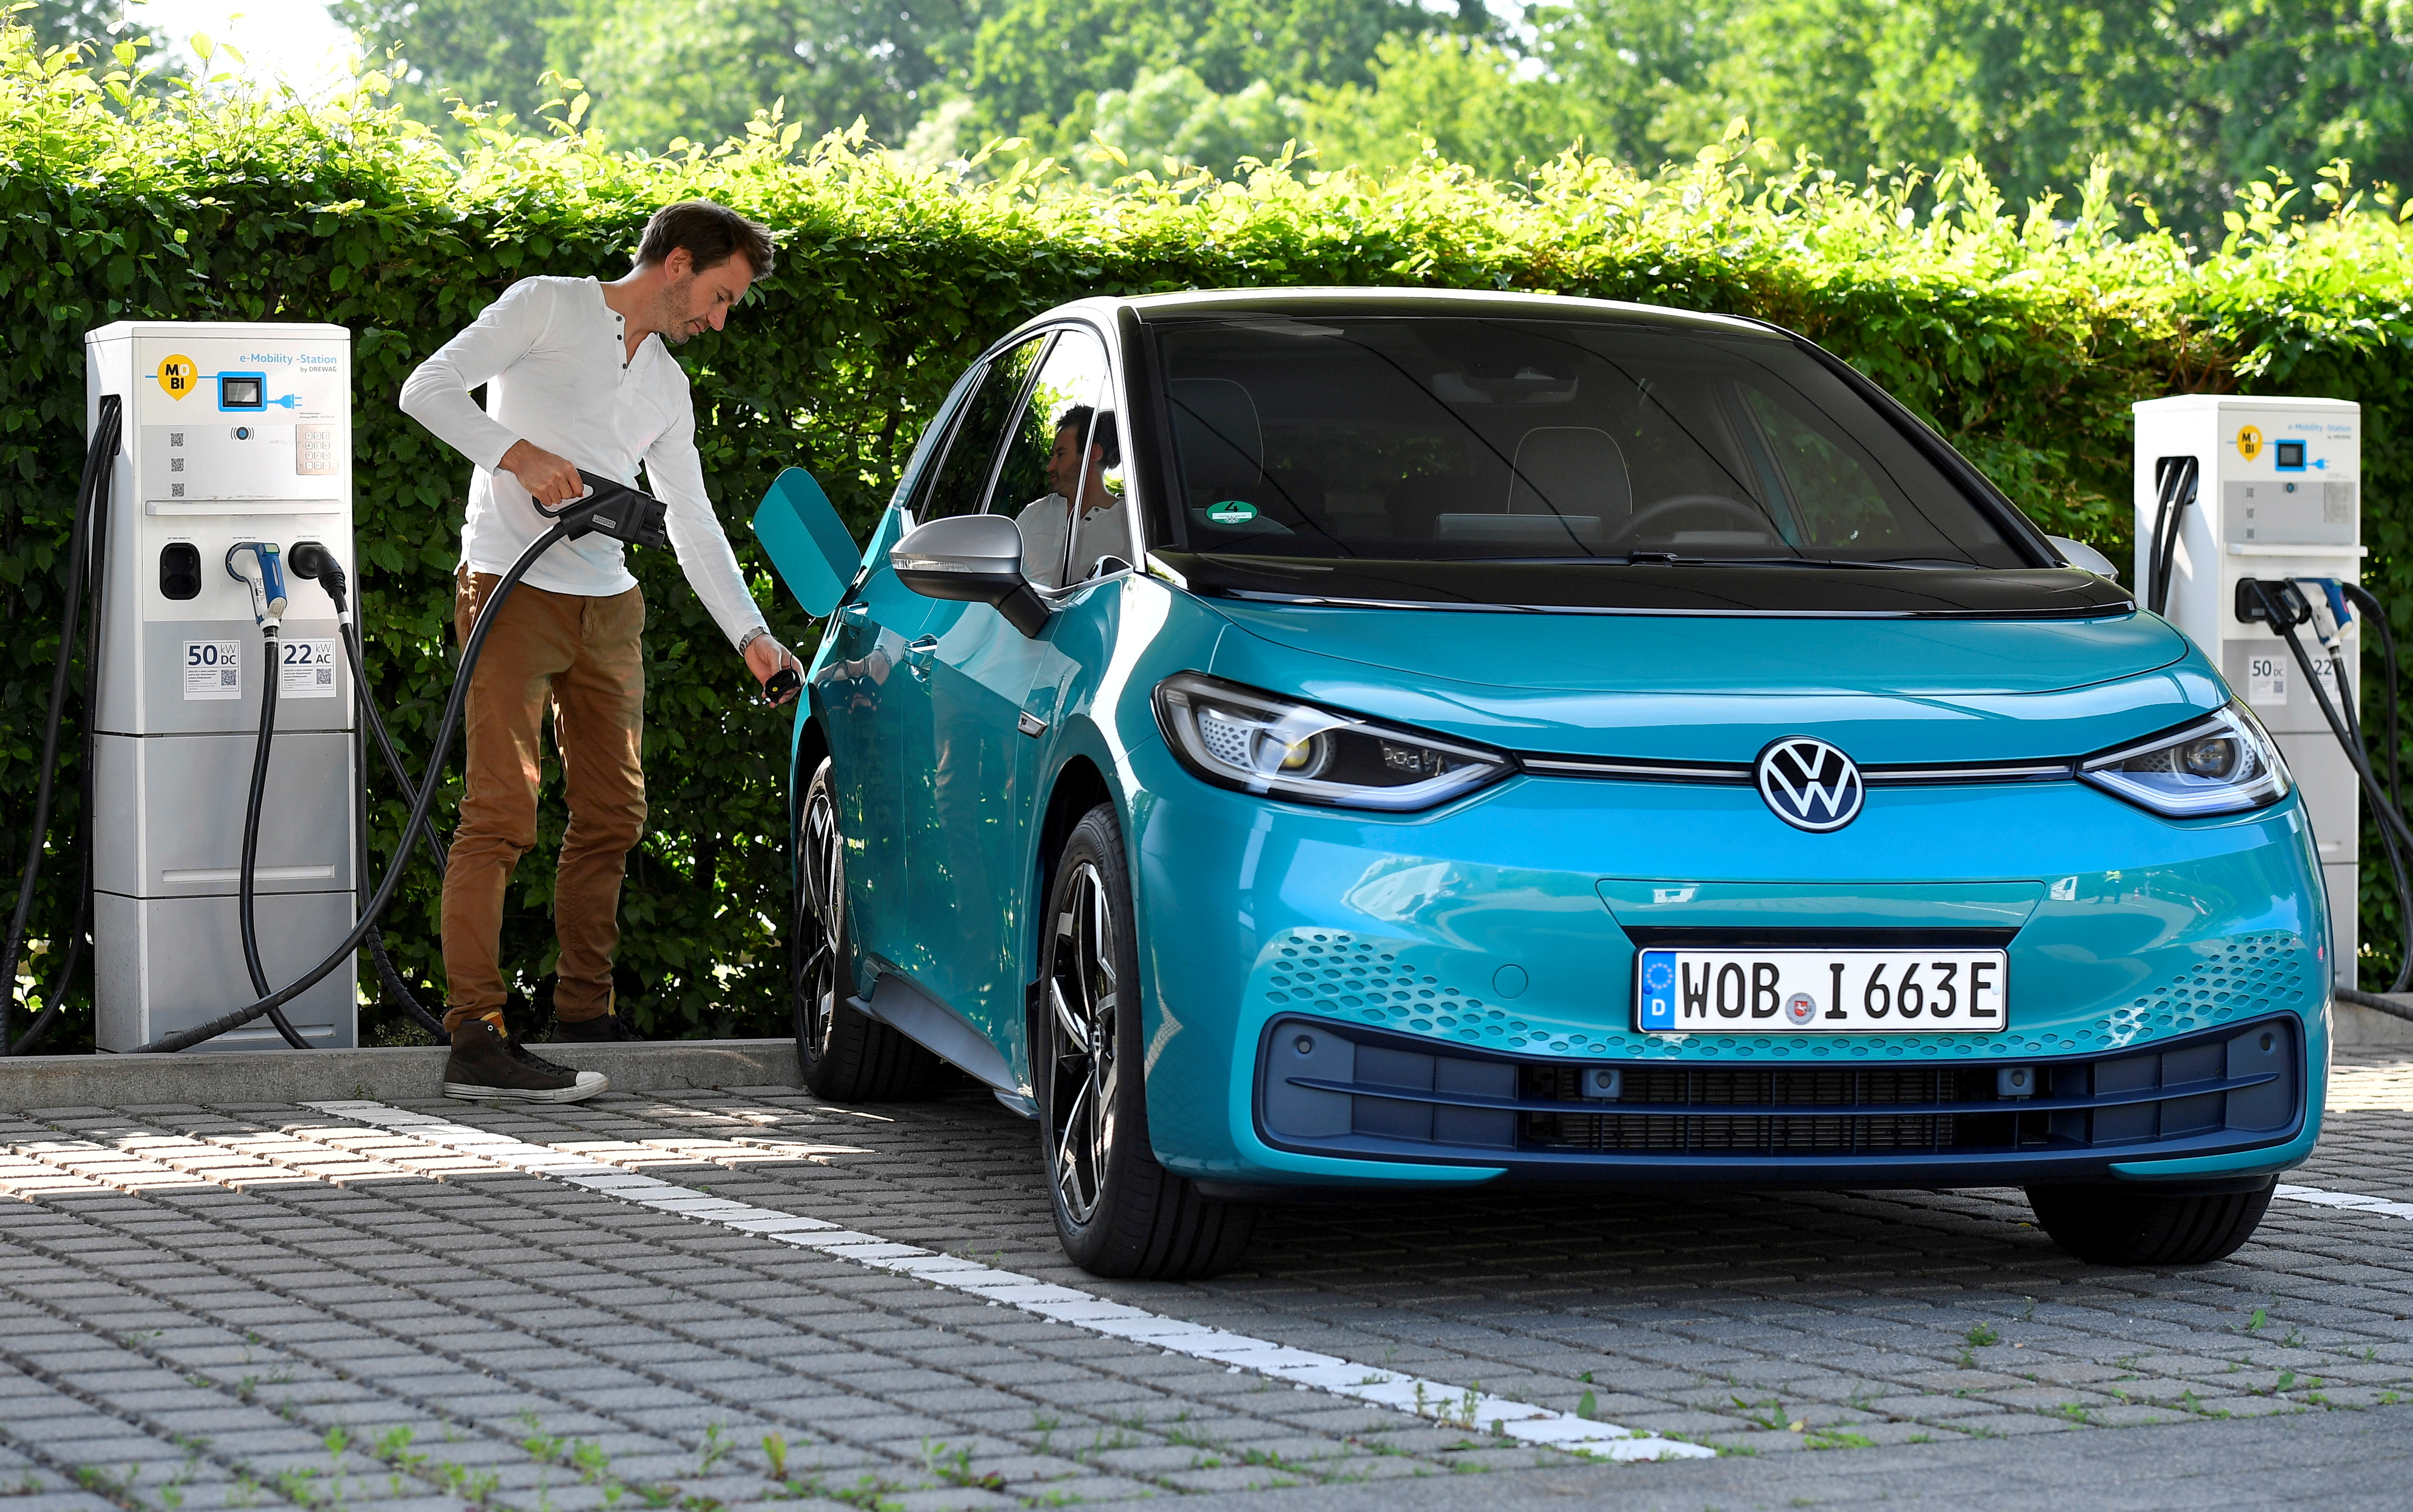 A man charges an electric ID. 3 car during a media event at German carmaker Volkswagen's so-called glass manufactory in Dresden, Germany, June 8, 2021. REUTERS/Matthias Rietschel